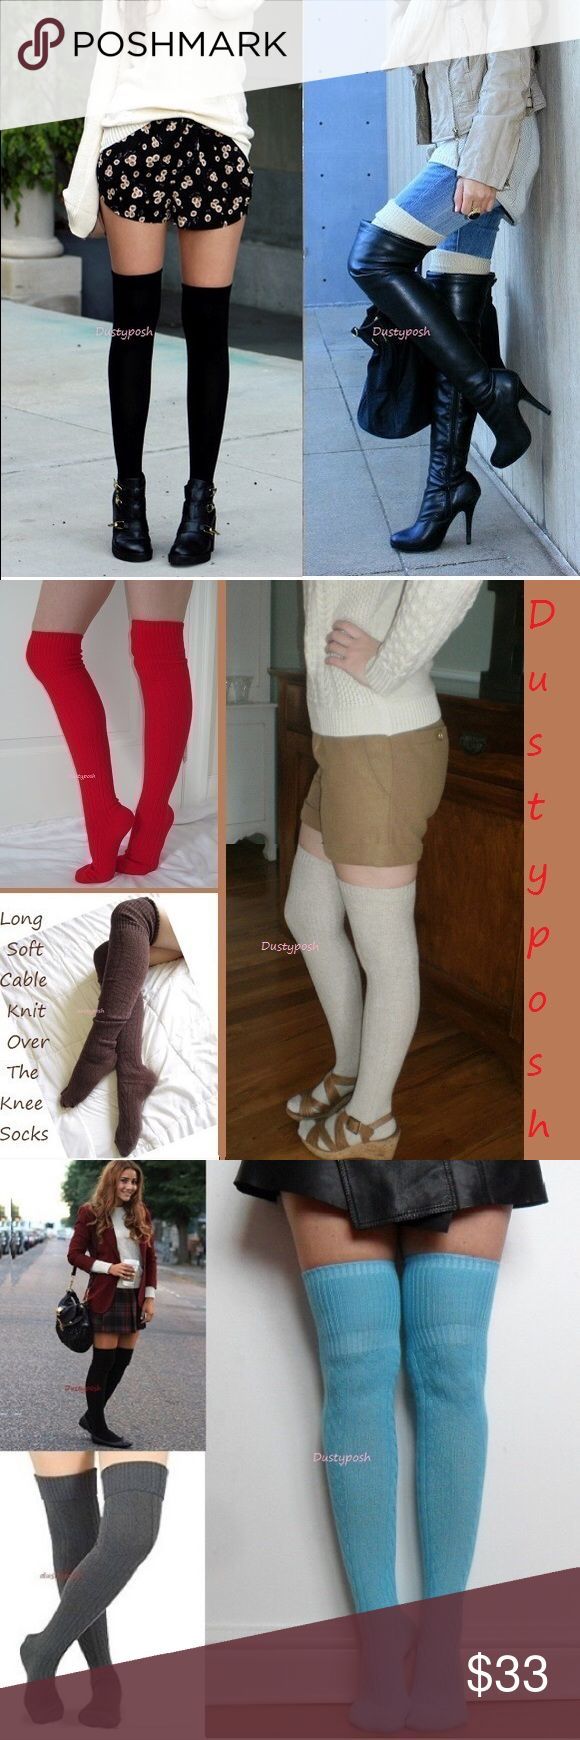 Cable Knit Over The Knee Sock Thigh High Cuff Boot Long soft cable knit over the knee socks. One pair new never worn, choose from ivory, black, hot pink, blue, brown, red or gray. Cute cozy boot socks, I'm sure you will love them. These are long enough to wear thigh high for most or over the knee with a nice cuff. Push them down below your knees and rock them as scrunchy knee highs. Surely to keep your tootsies warm, normal to thick socks thickness, not like cheap thin so called over the…